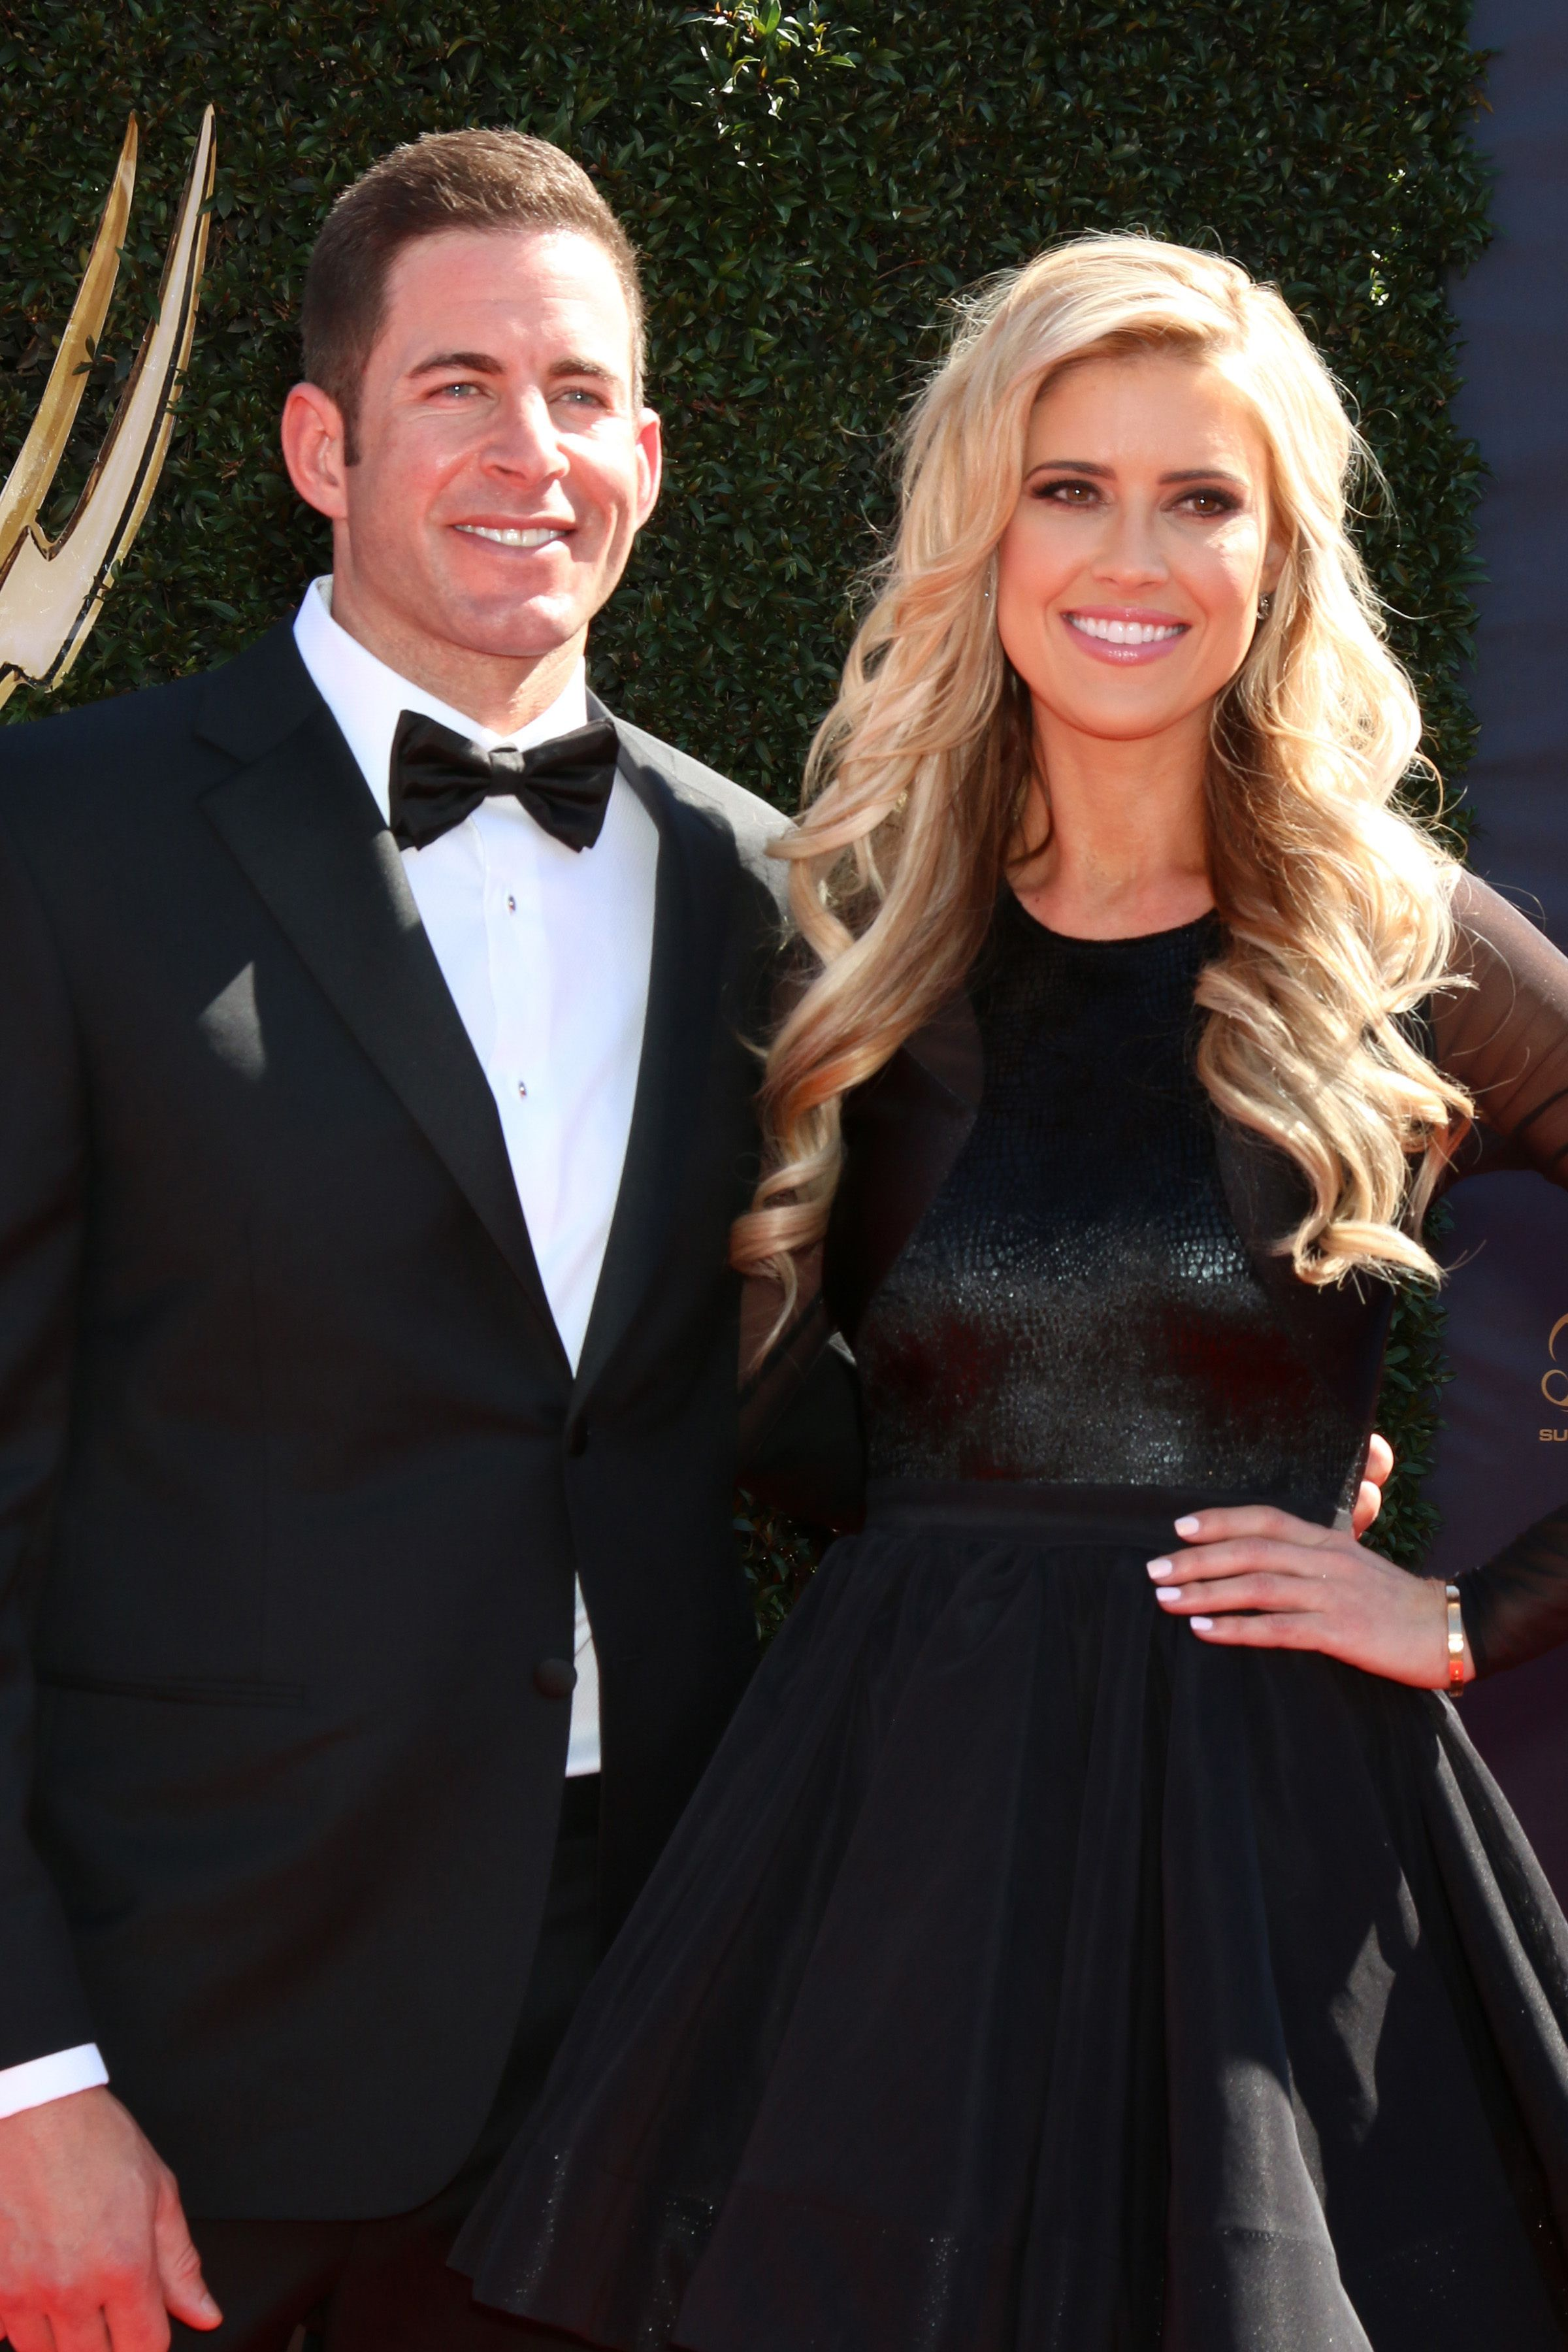 Tarek and Christina El Moussa at the 44th Daytime Emmy Awards on April 30, 2017, in Pasadena, California | Photo: Shutterstock/Kathy Hutchins